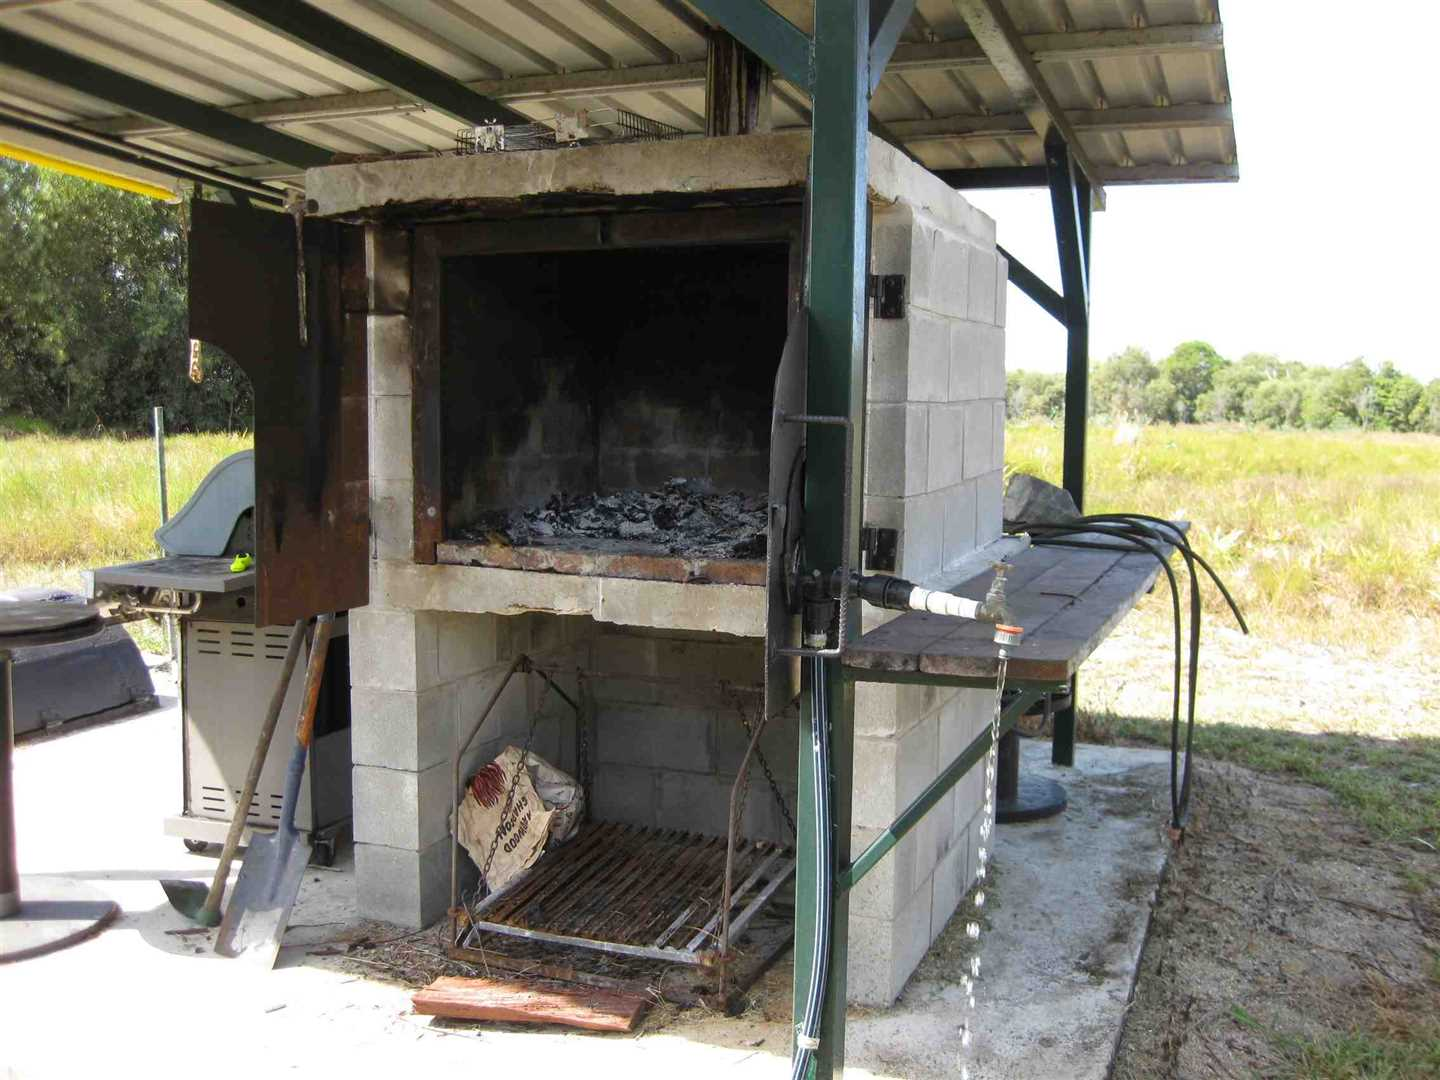 View of part of BBQ area, photo 2